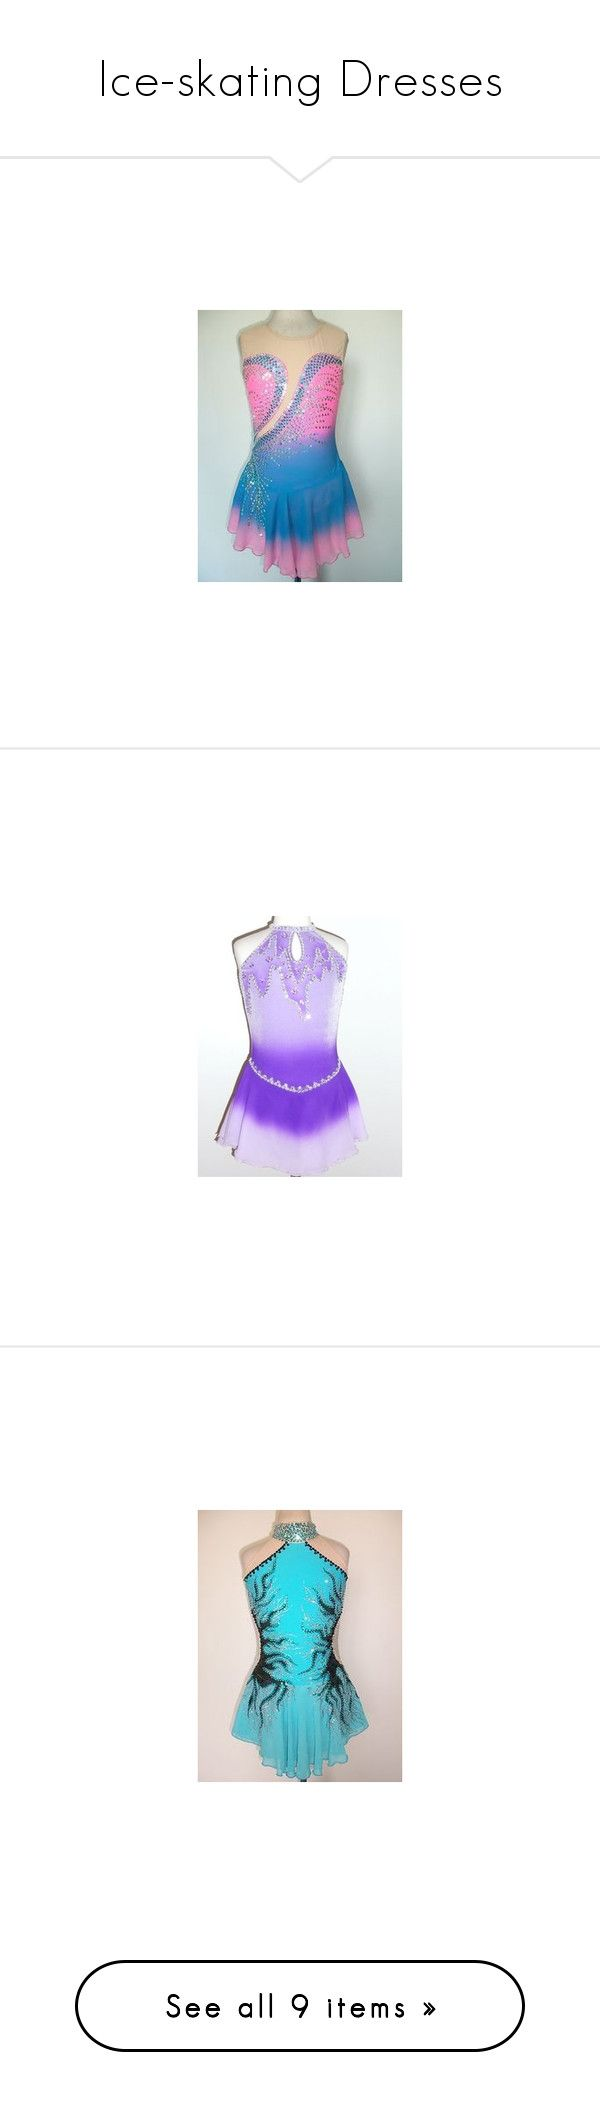 """Ice-skating Dresses"" by frozen1-1 ❤ liked on Polyvore featuring dresses, ice skating, lullabies, sports dress, sport dress, metallic dresses, purple dresses, metallic cocktail dress, purple cocktail dresses and figure skating"